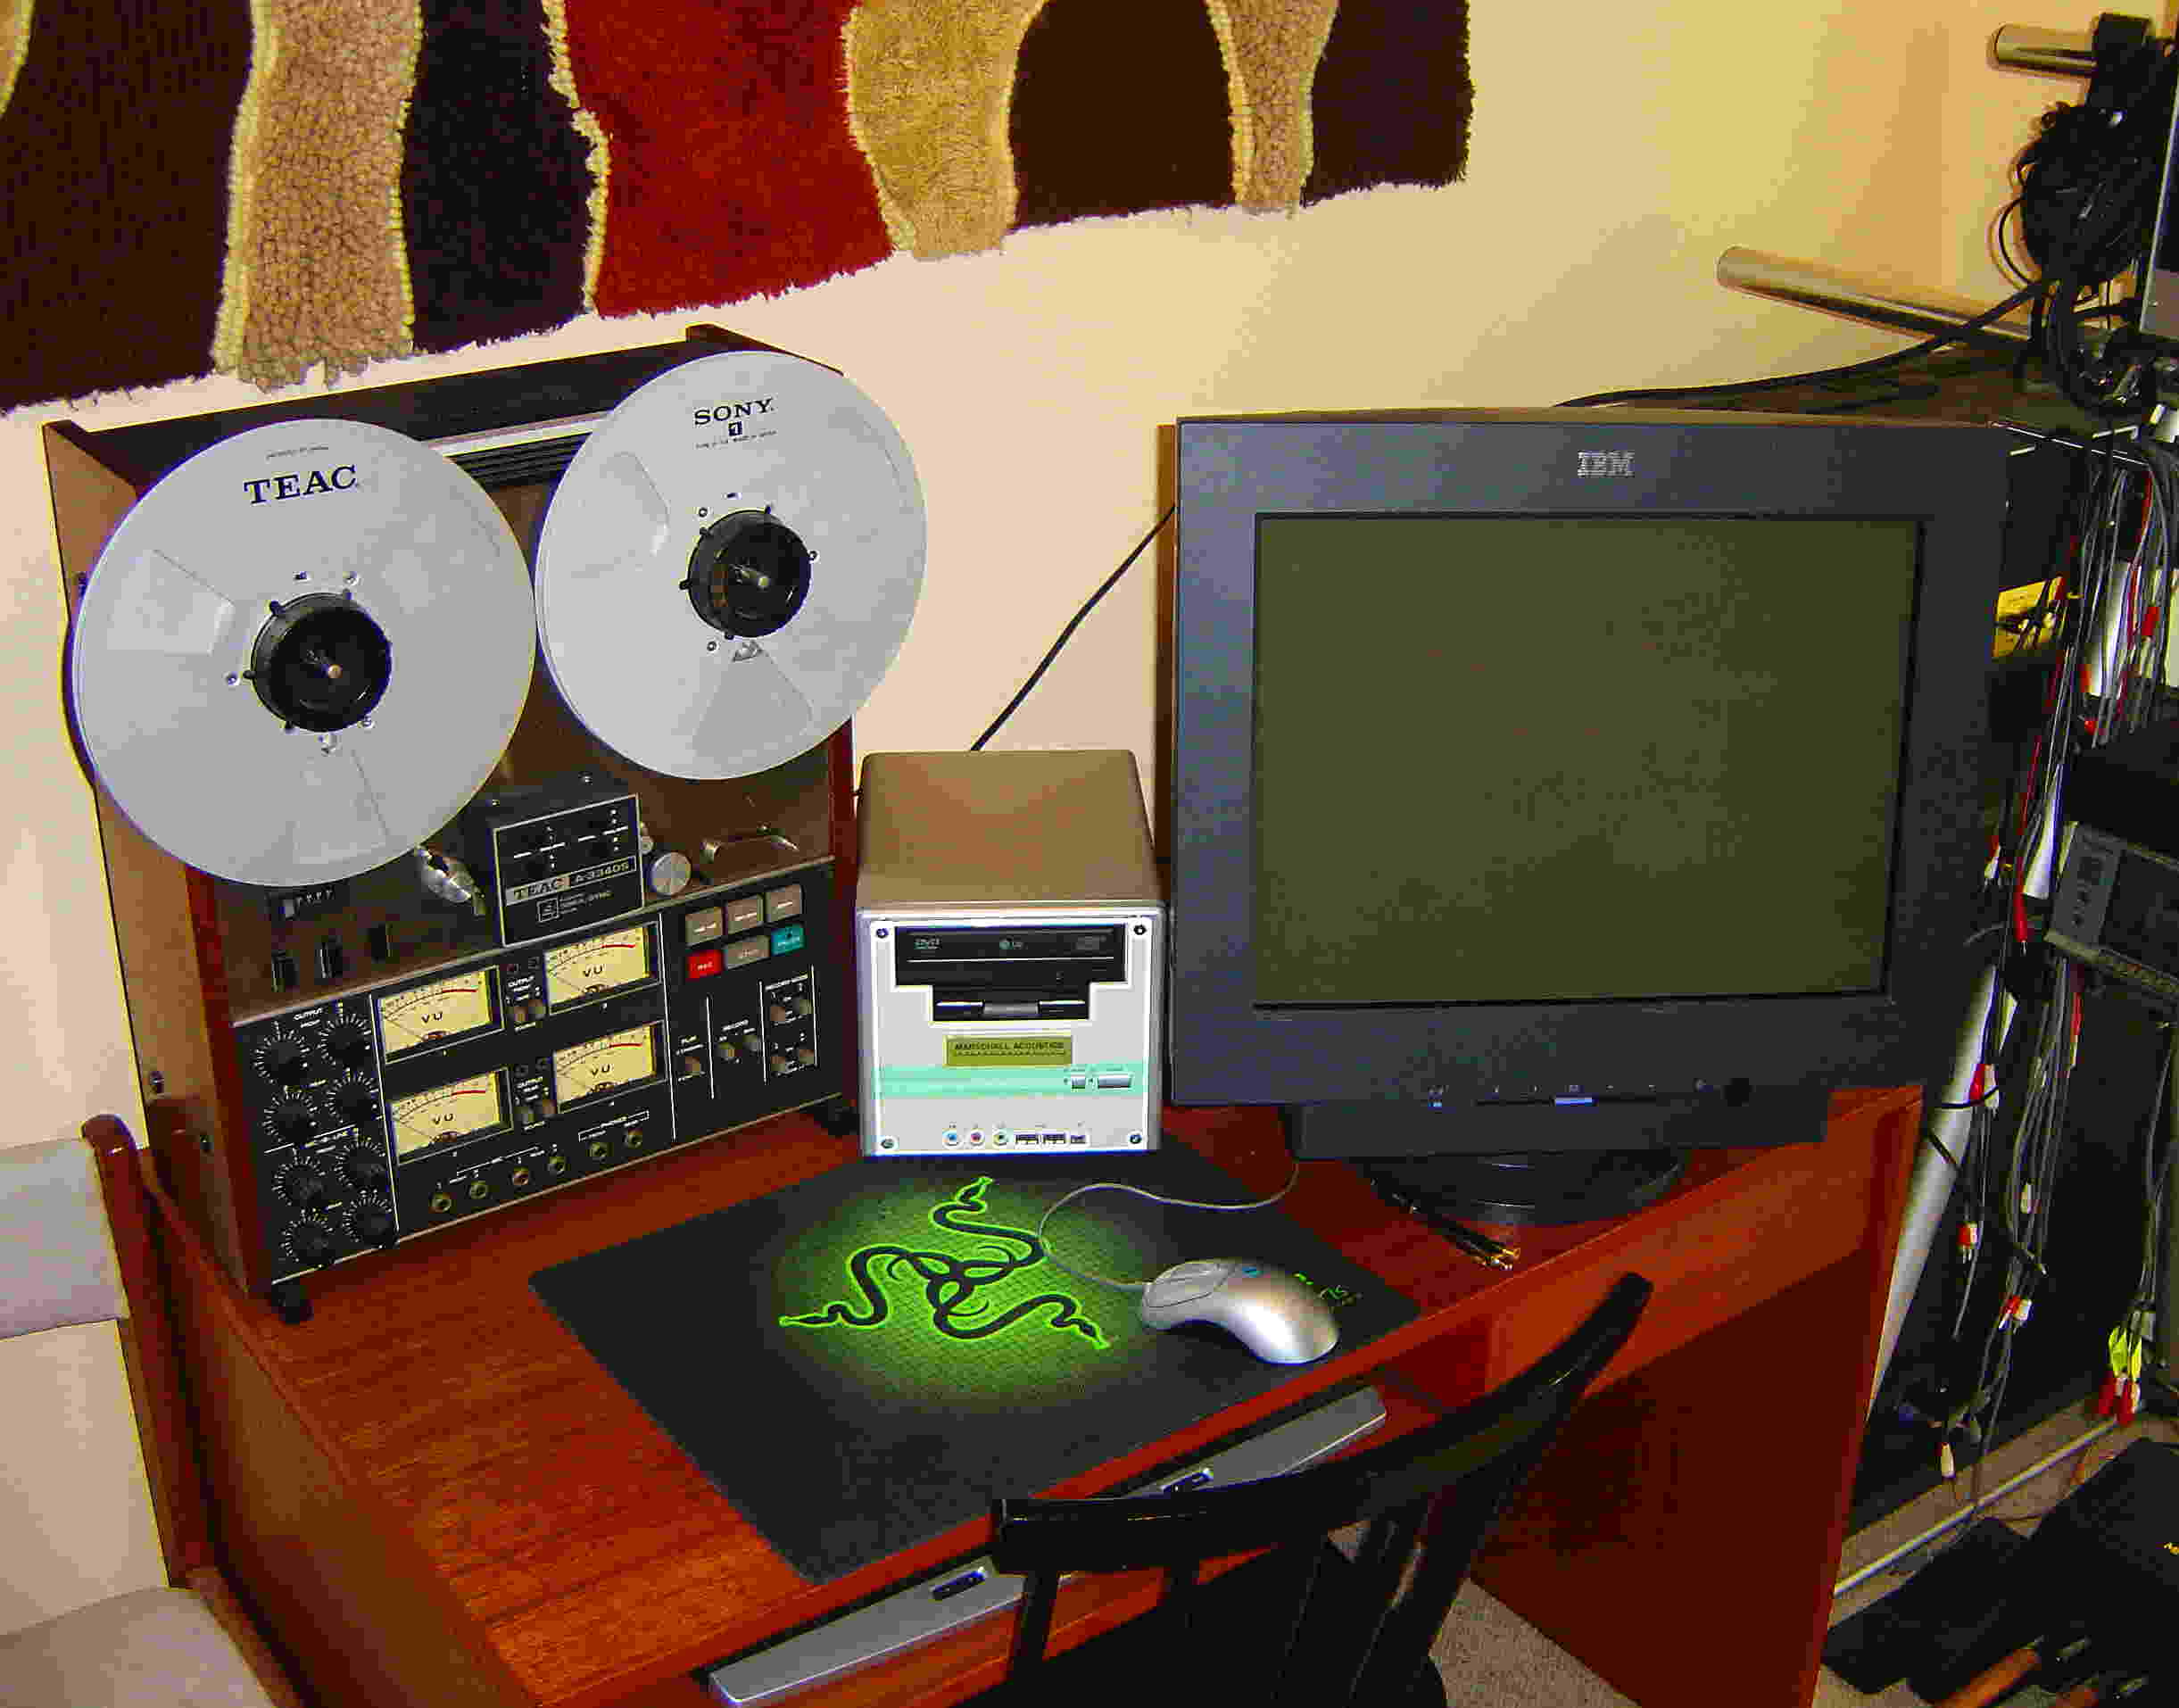 Marschall Acoustics Instruments Digital Audio Workstation Mk II and Mk III Beta with Teac 3340 Reel-to-Reel Tape Deck